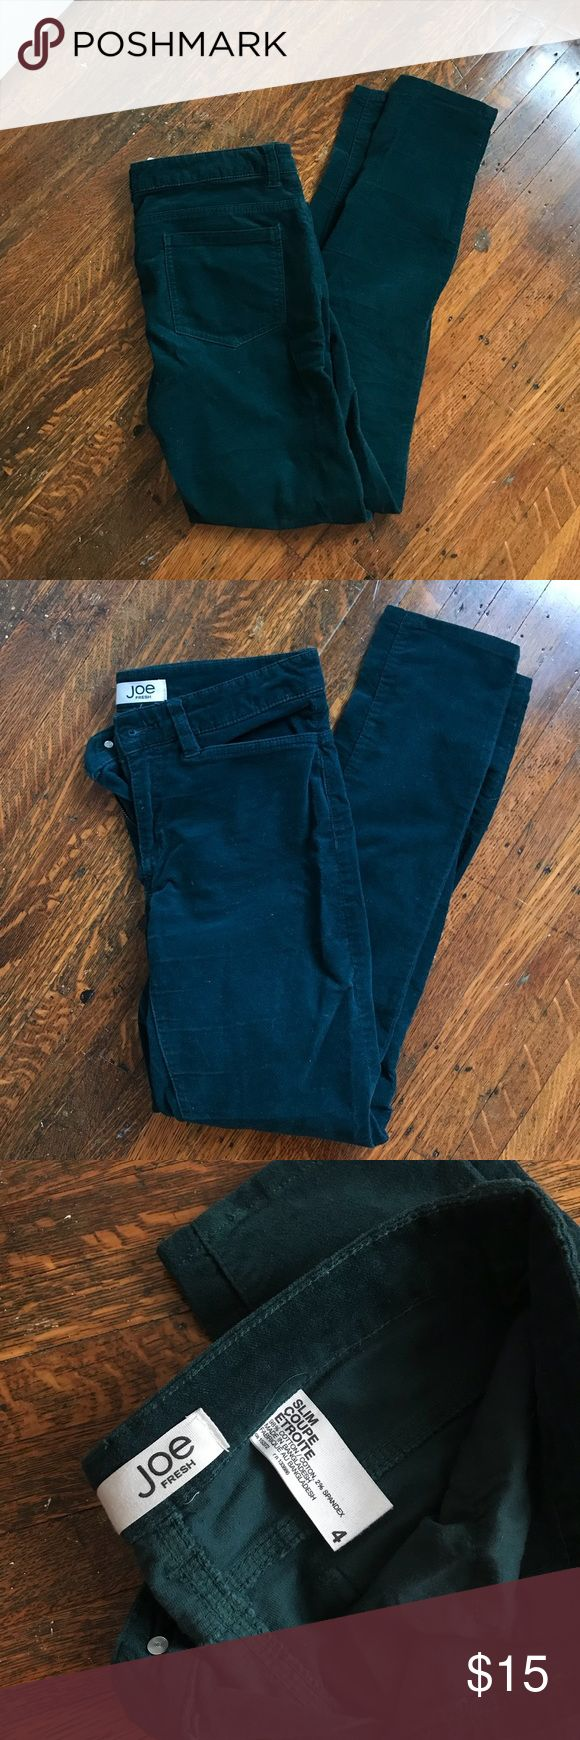 Joe Fresh Teal Corduroy Velvet Pants Skinny These Joe Fresh pants are super soft to the touch and very warm! Green teal color perfect for fall/winter 2017 fashion. Slim/skinny fit. Great quality! Joe Fresh Pants Skinny